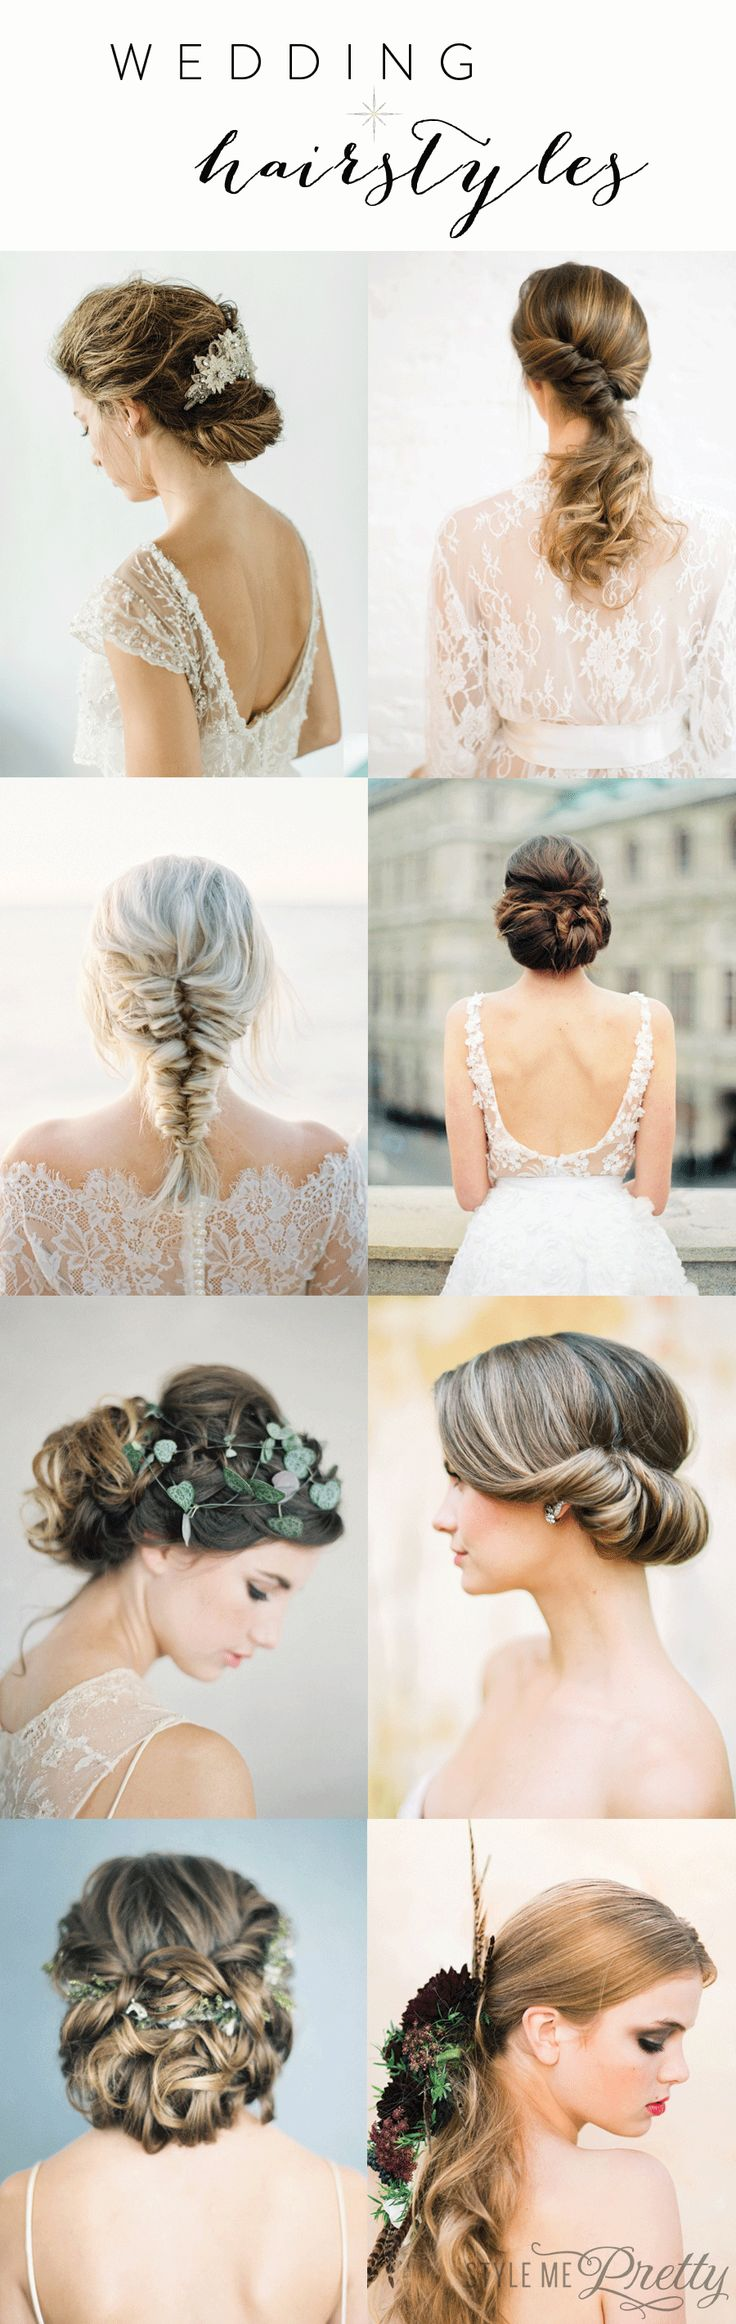 21 best Pentinats images on Pinterest | Long hair, Wedding hair ...